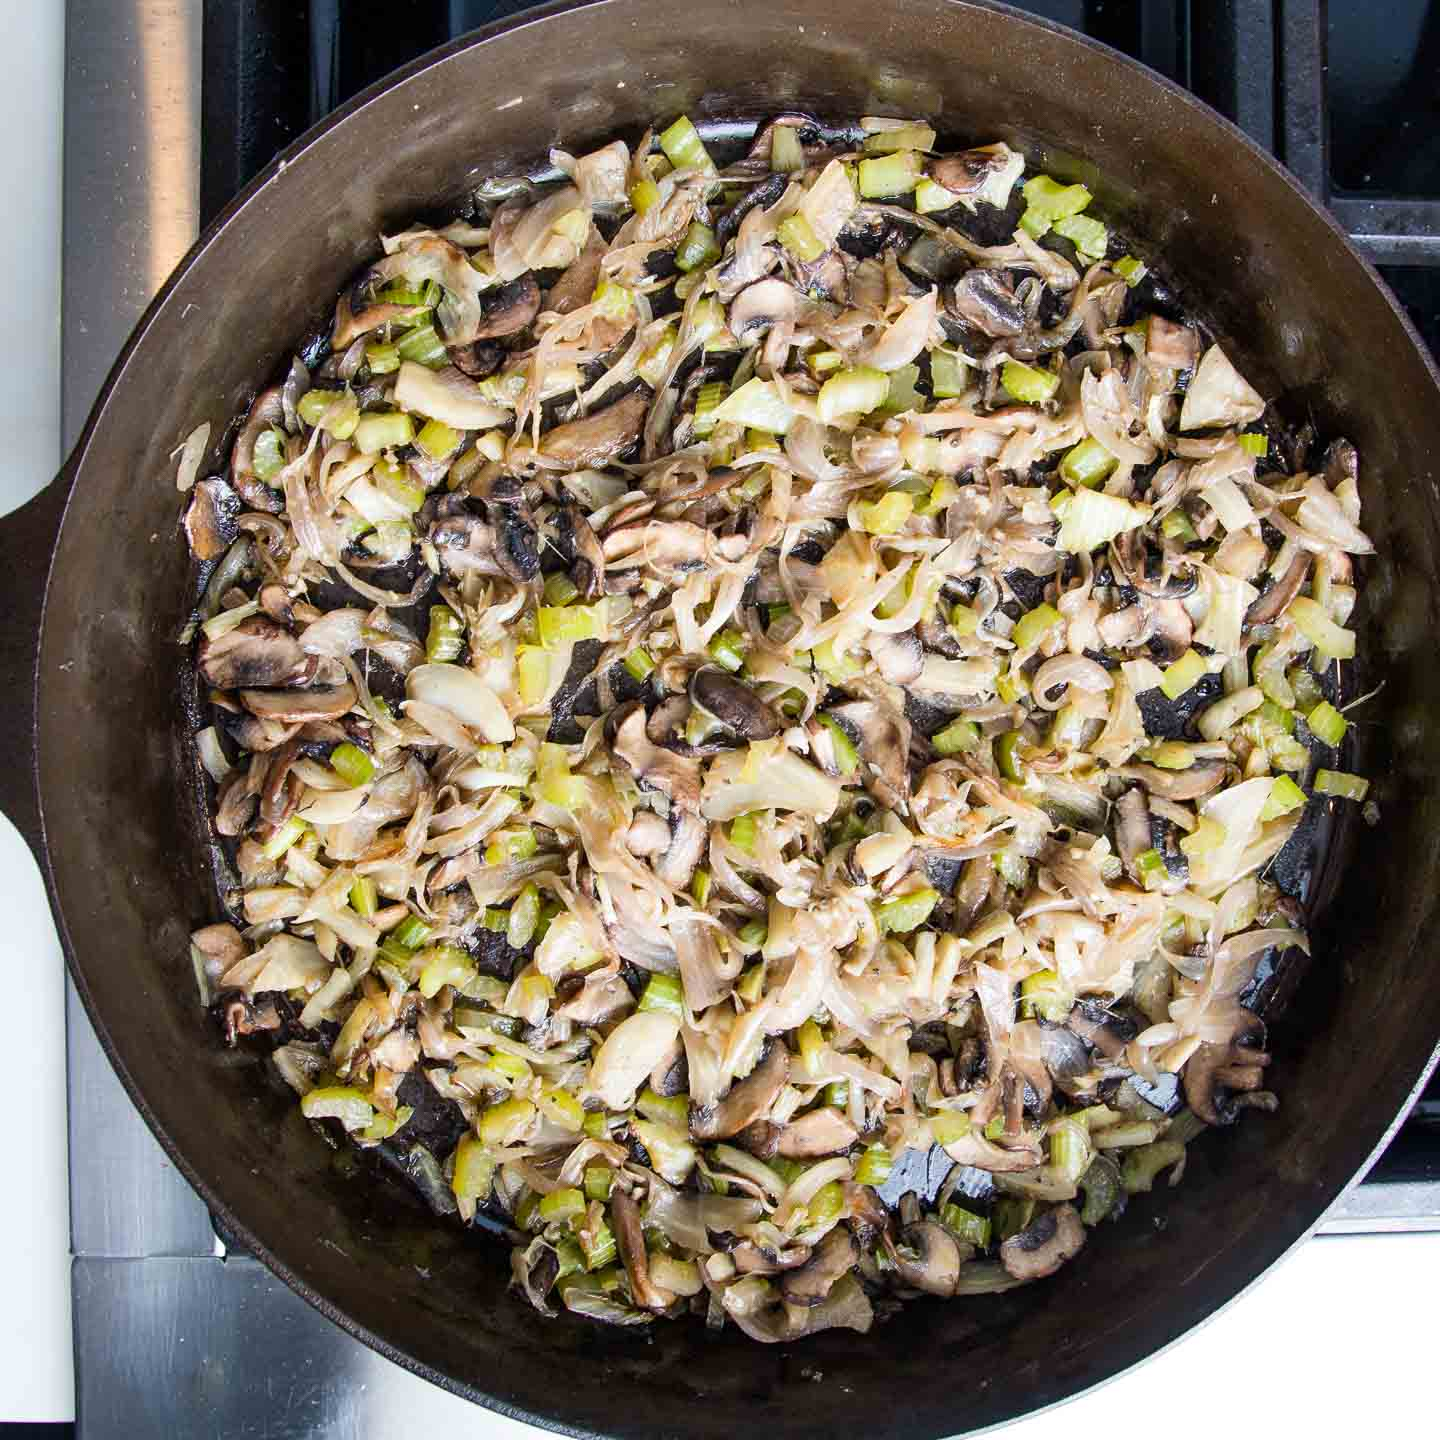 Sauteed veggies in cast iron skillet.  Mushrooms, fennel, celery and onions.